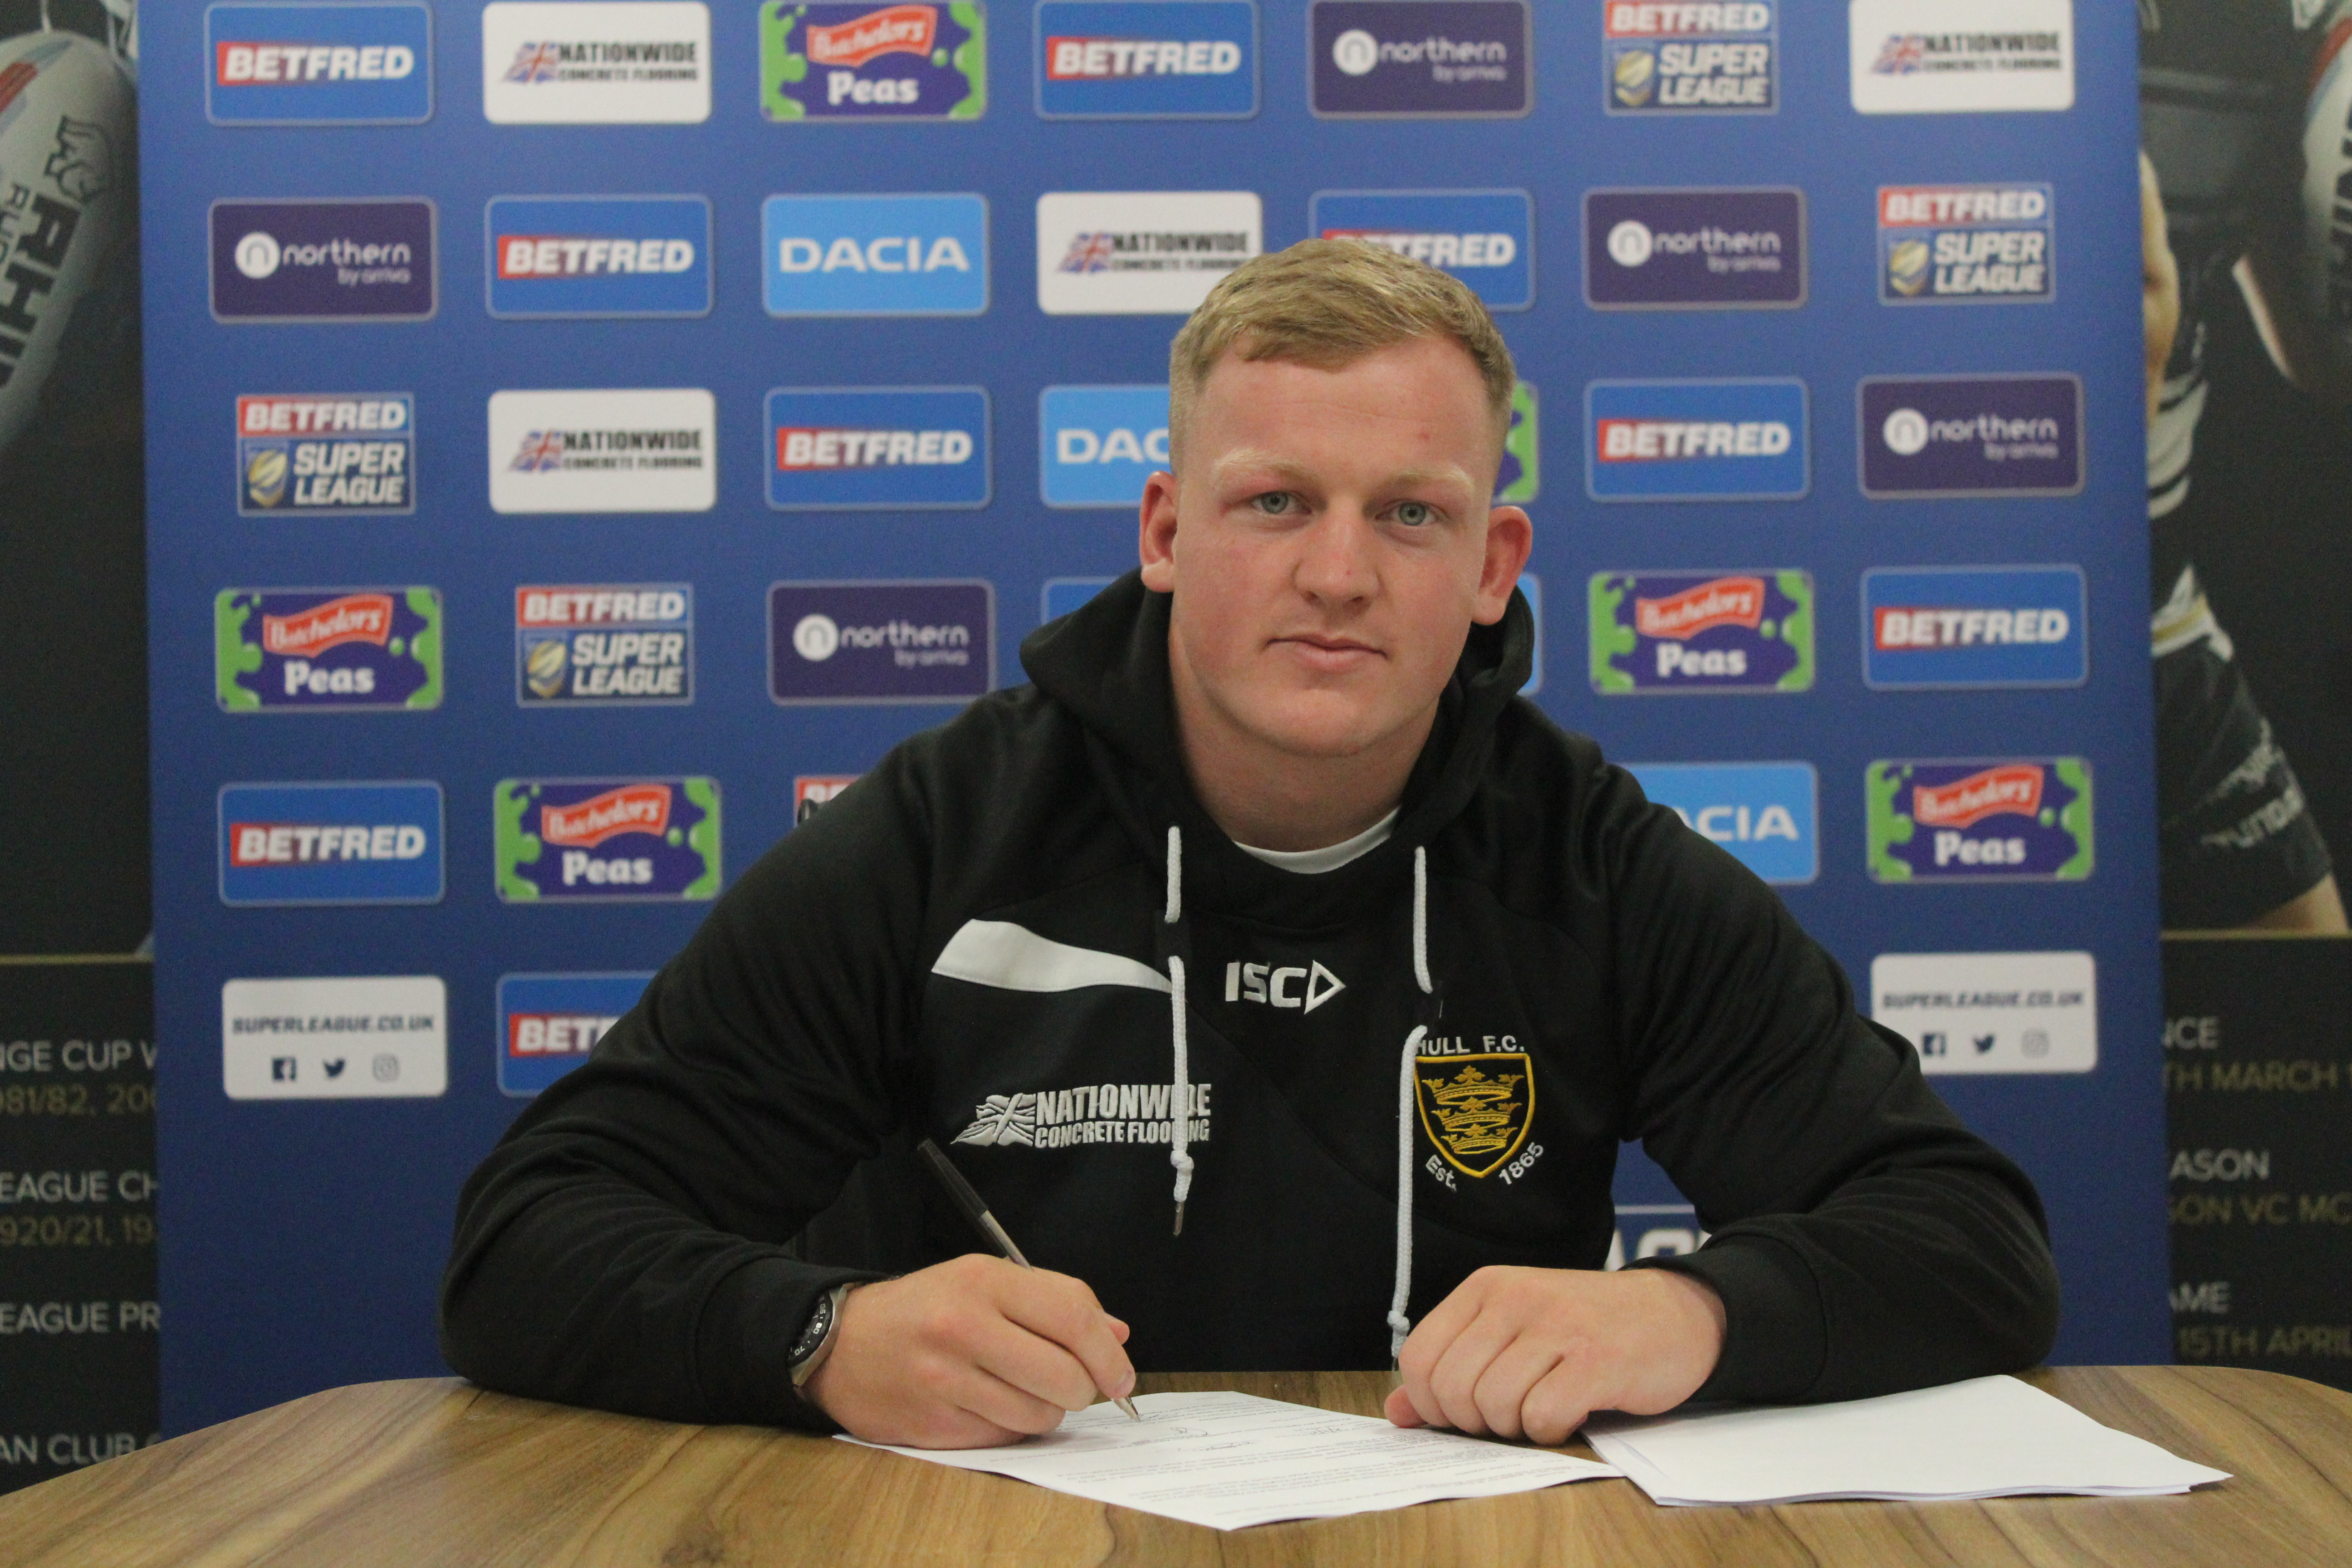 Johnstone has put pen to paper on a three-year deal with Hull FC from the start of the 2020 campaign.